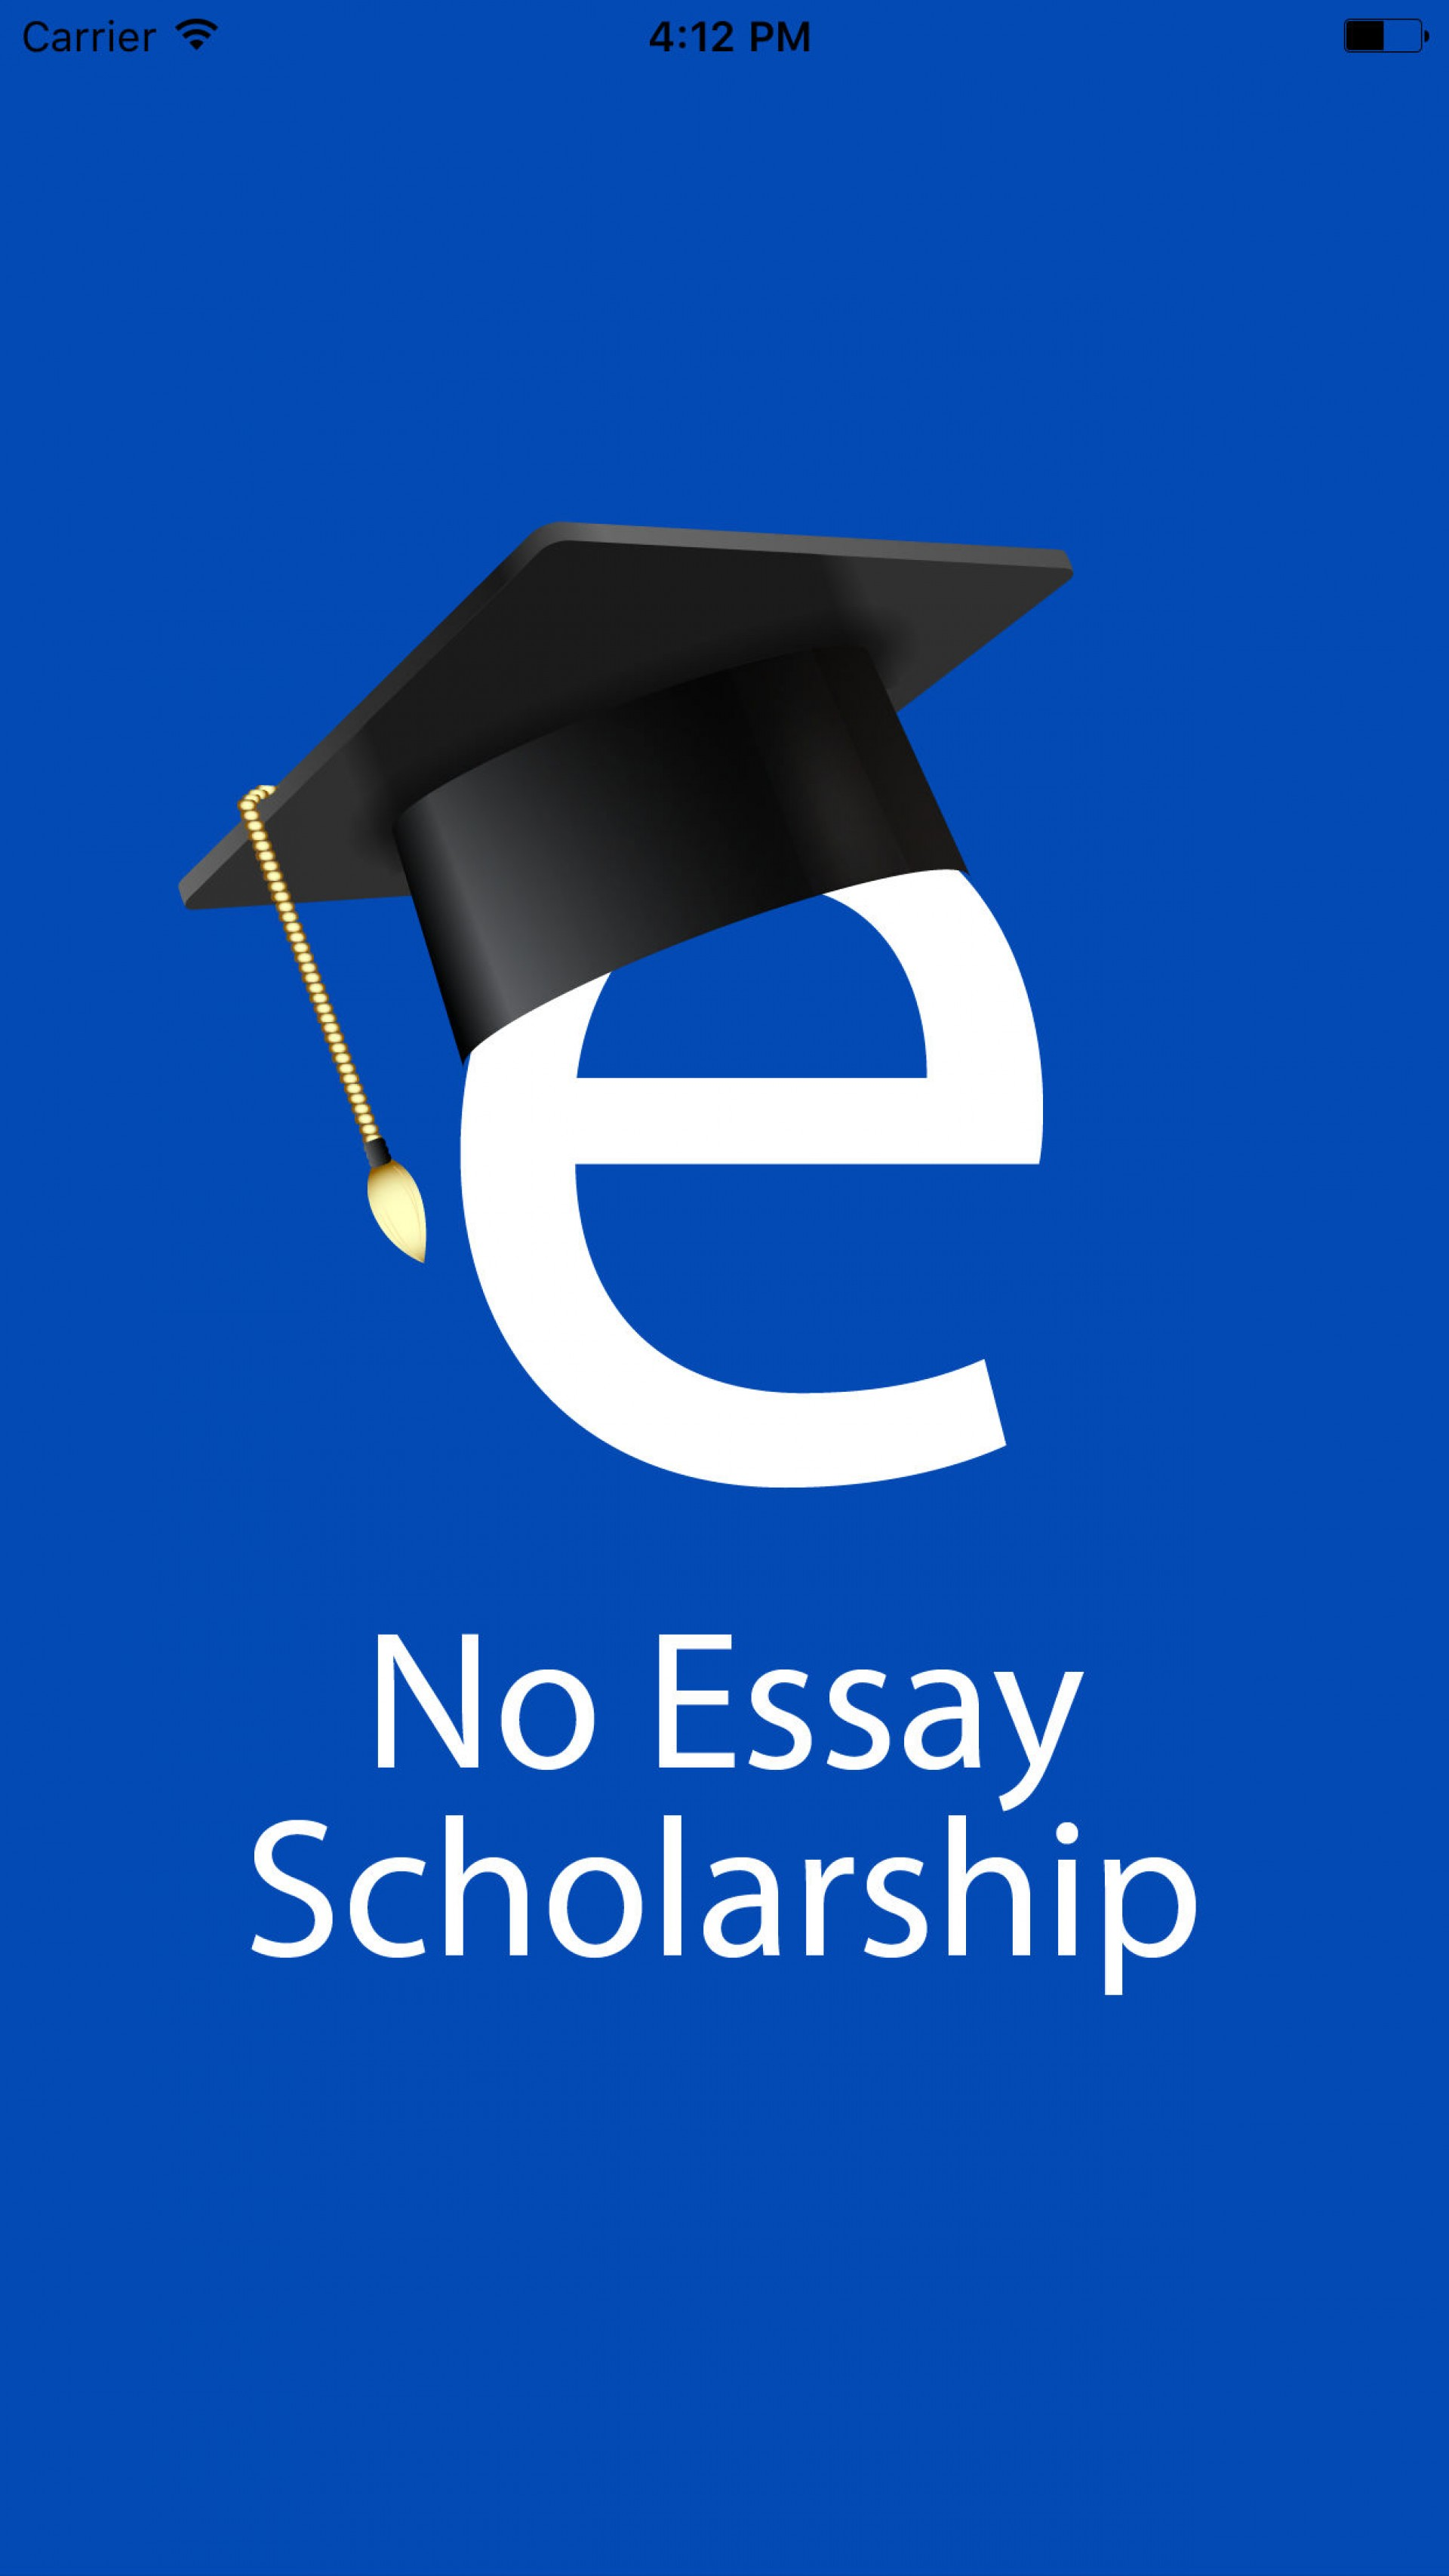 011 Essay Scholarship Search Push Apply Hafiz Adnan Shafiq No Applications Required Free Contest For High School Seniors Fast Legit App Cappex College Prowler Scam Review Rare Scholarships 2018 Short 1920